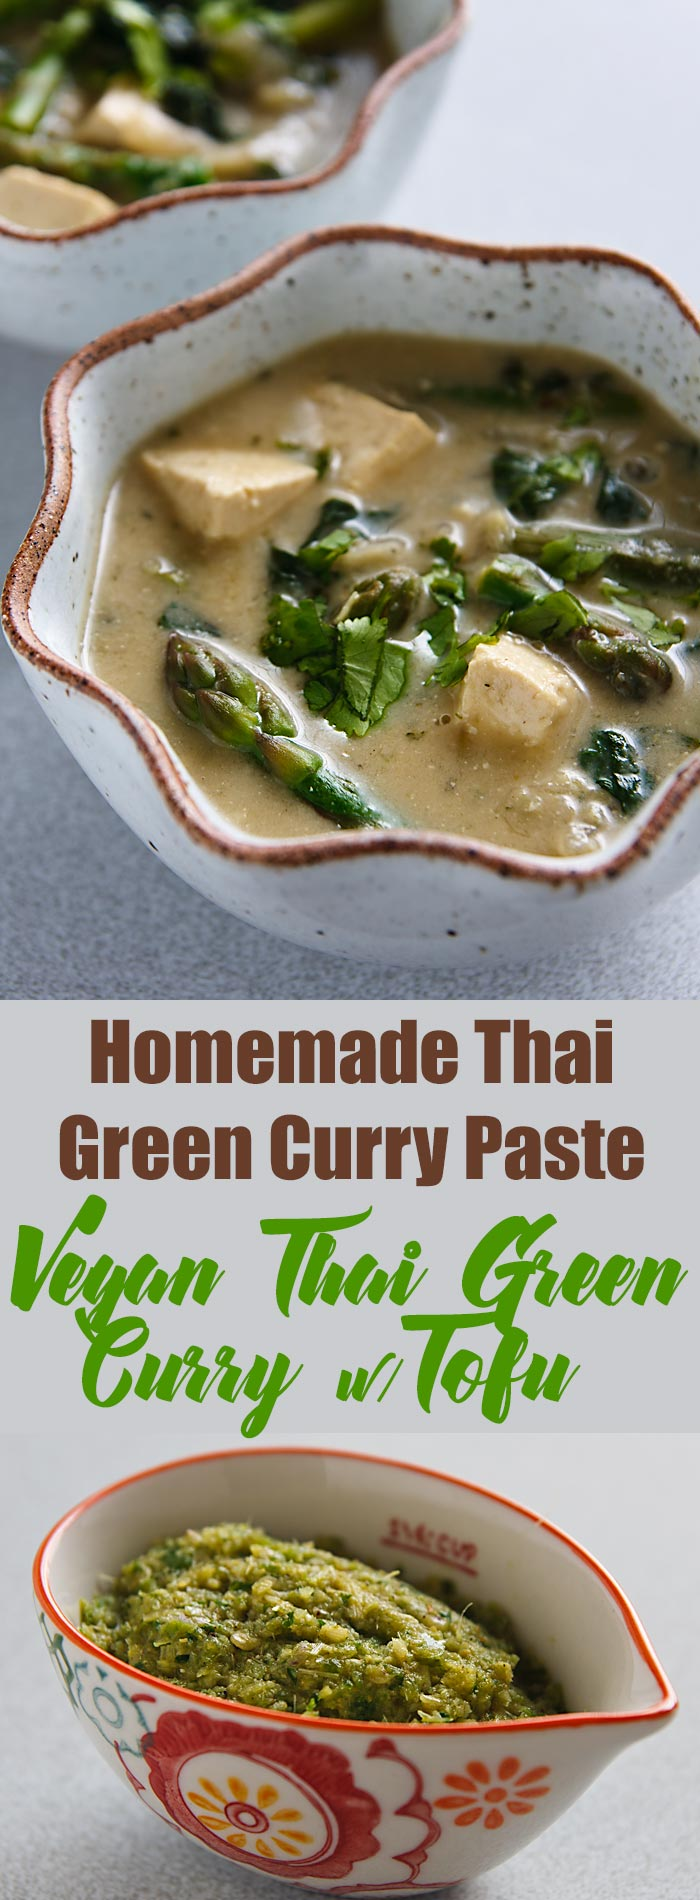 Make your own Thai Green Curry Paste using this recipe and then use it in a delicious vegan Thai green curry with tofu and vegetables.